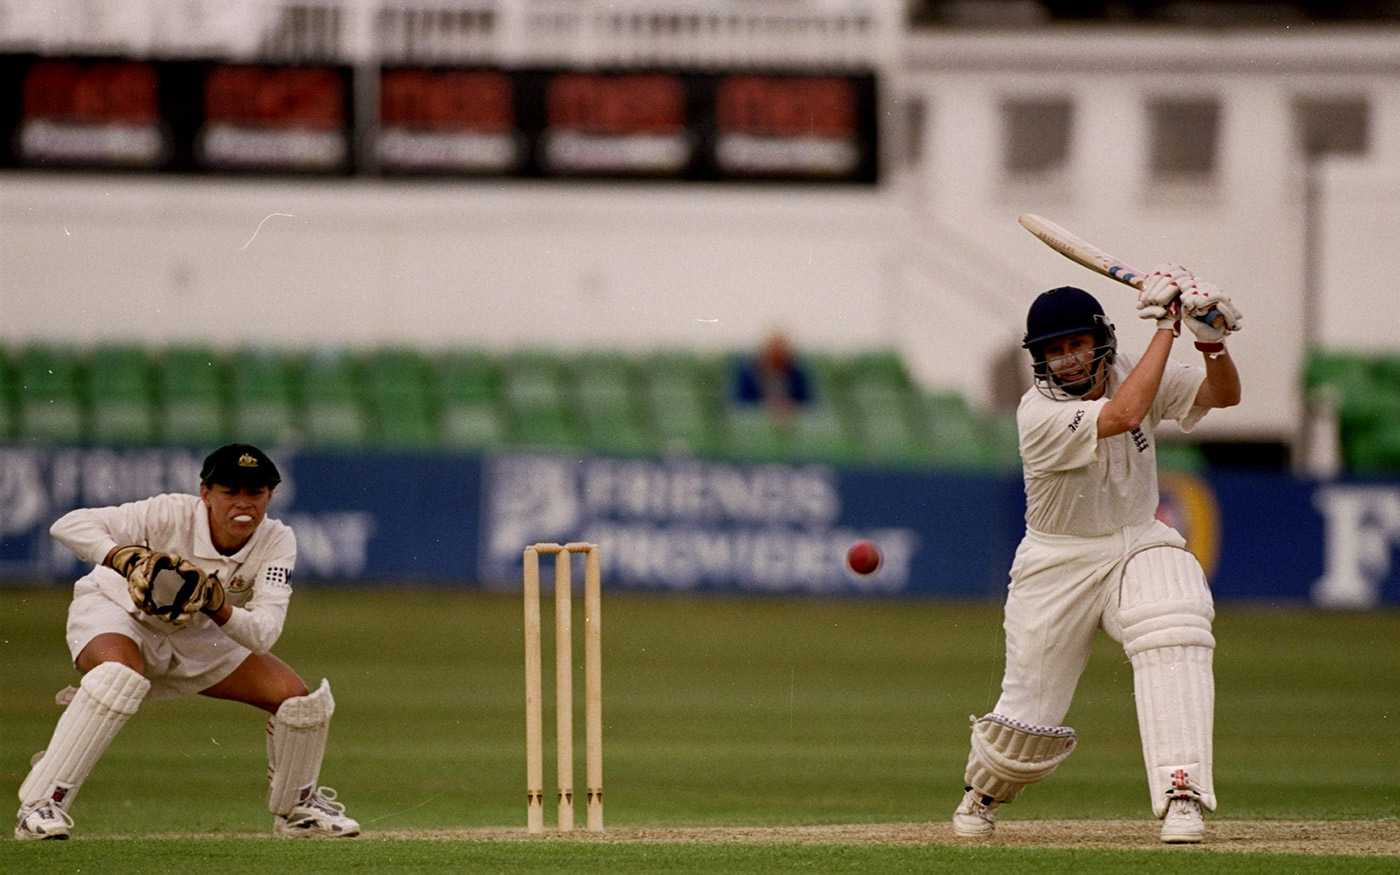 The mighty Jan Brittin bats on day one of the third Test. She finished the series with 450 runs at 112.50